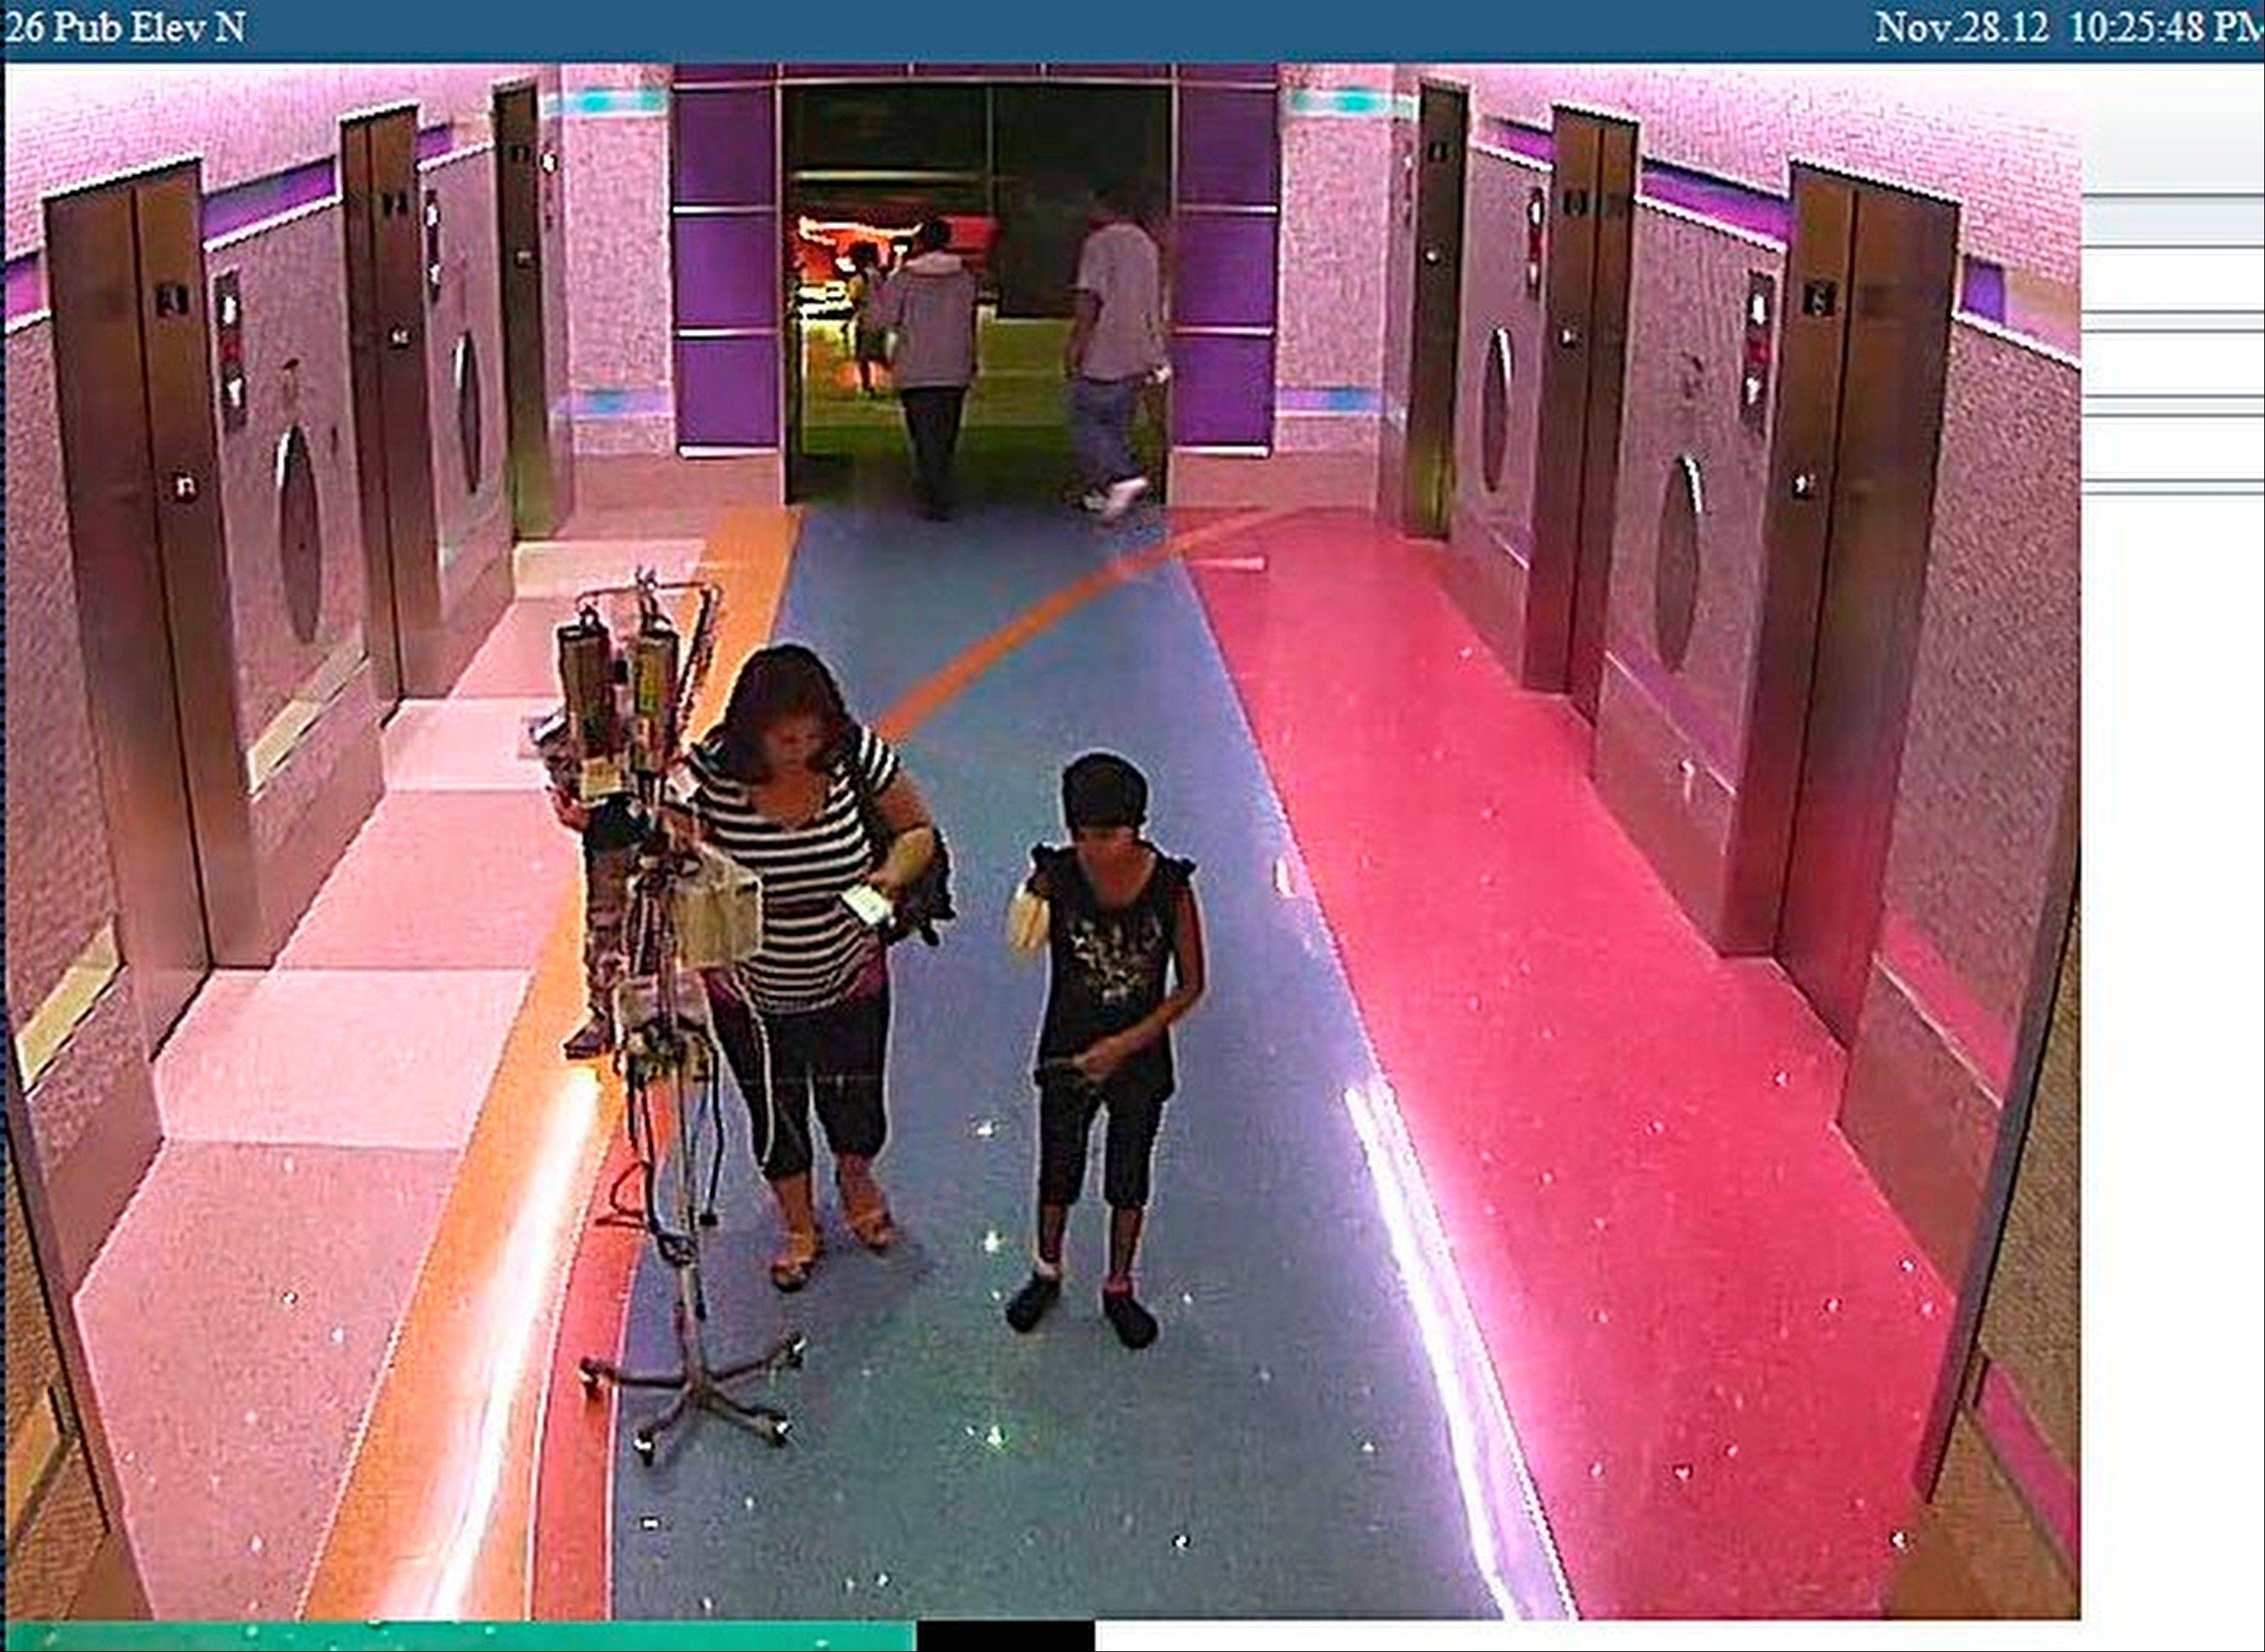 In this hospital surveillance photo released Monday by the Phoenix Police Department, a woman is seen with her 11-year-old daughter, a leukemia patient who had her arm amputated and a heart catheter inserted due to an infection. Authorities say the woman inexplicably took the girl from the hospital last week. Police say that if the catheter is left in too long it could lead to a deadly infection. The family's identity is being withheld but they are calling the girl Emily.